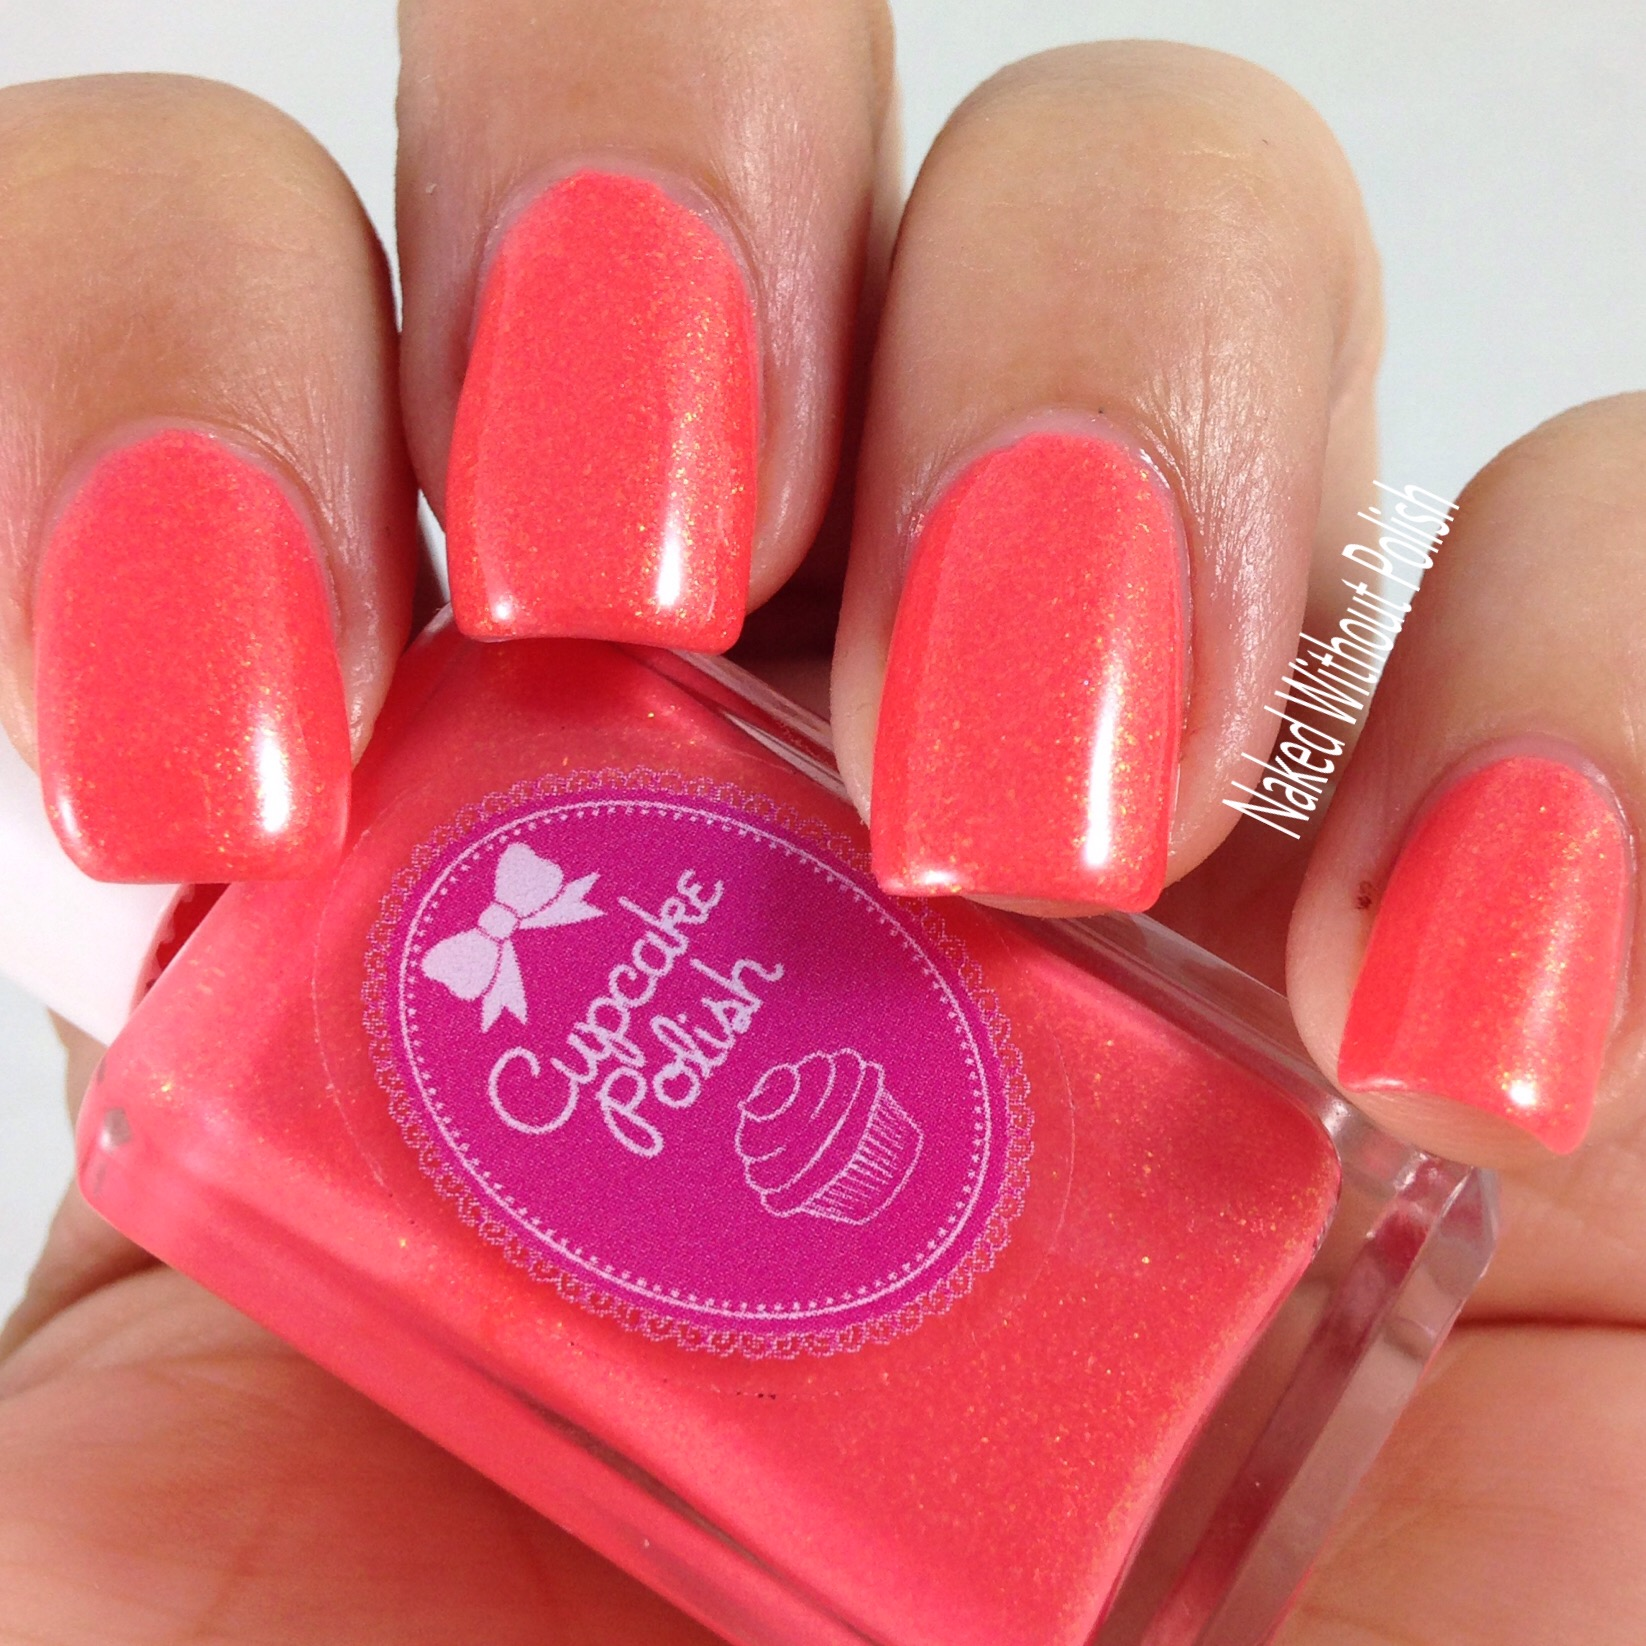 Cupcake-Polish-Like-a-Peach-6